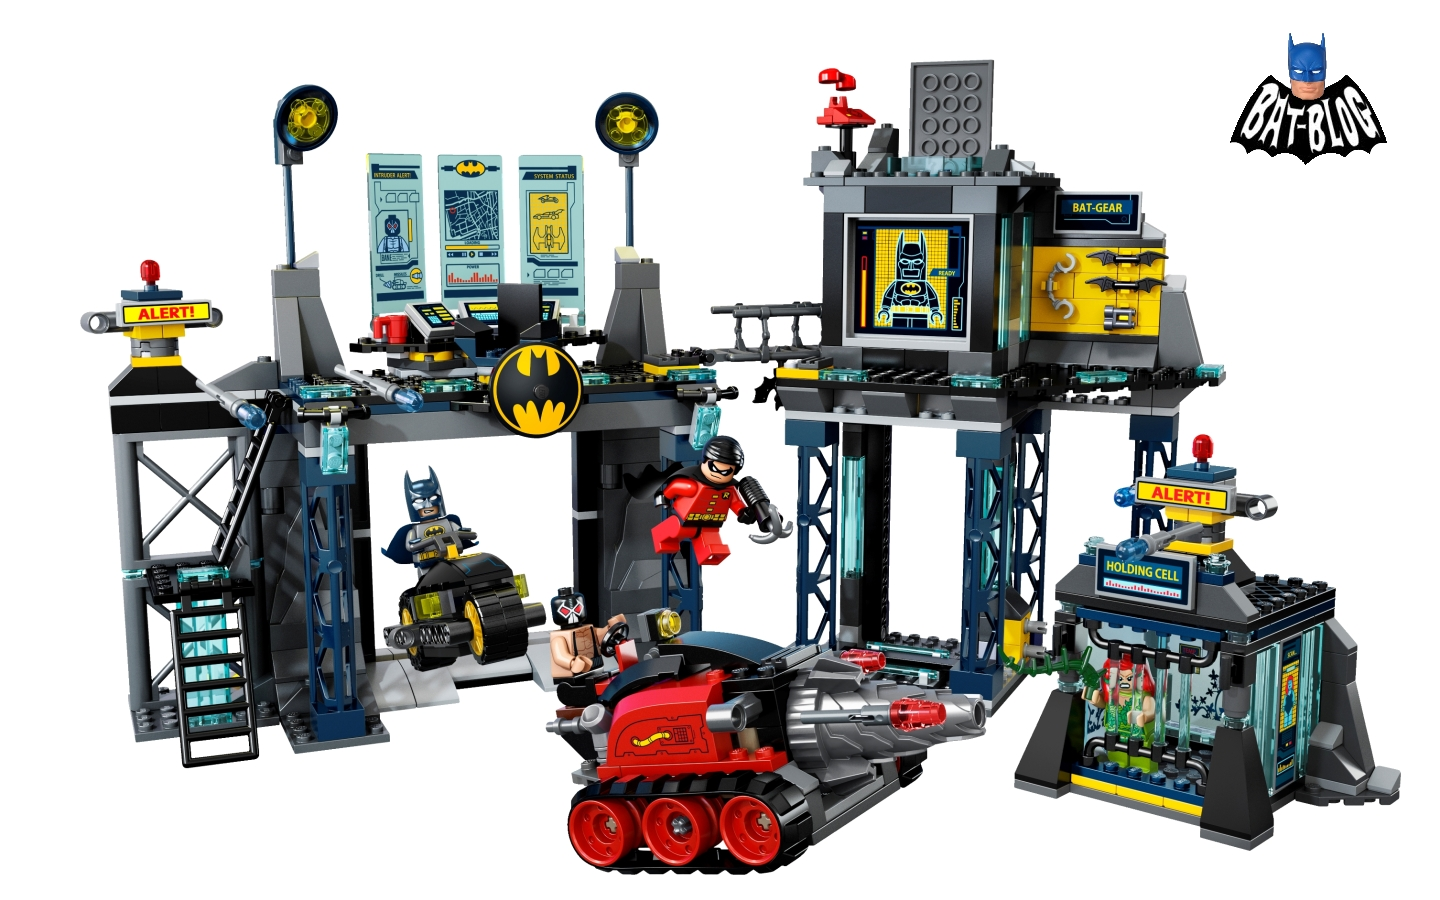 Displaying 17gt Images For Batman Batcave Toy